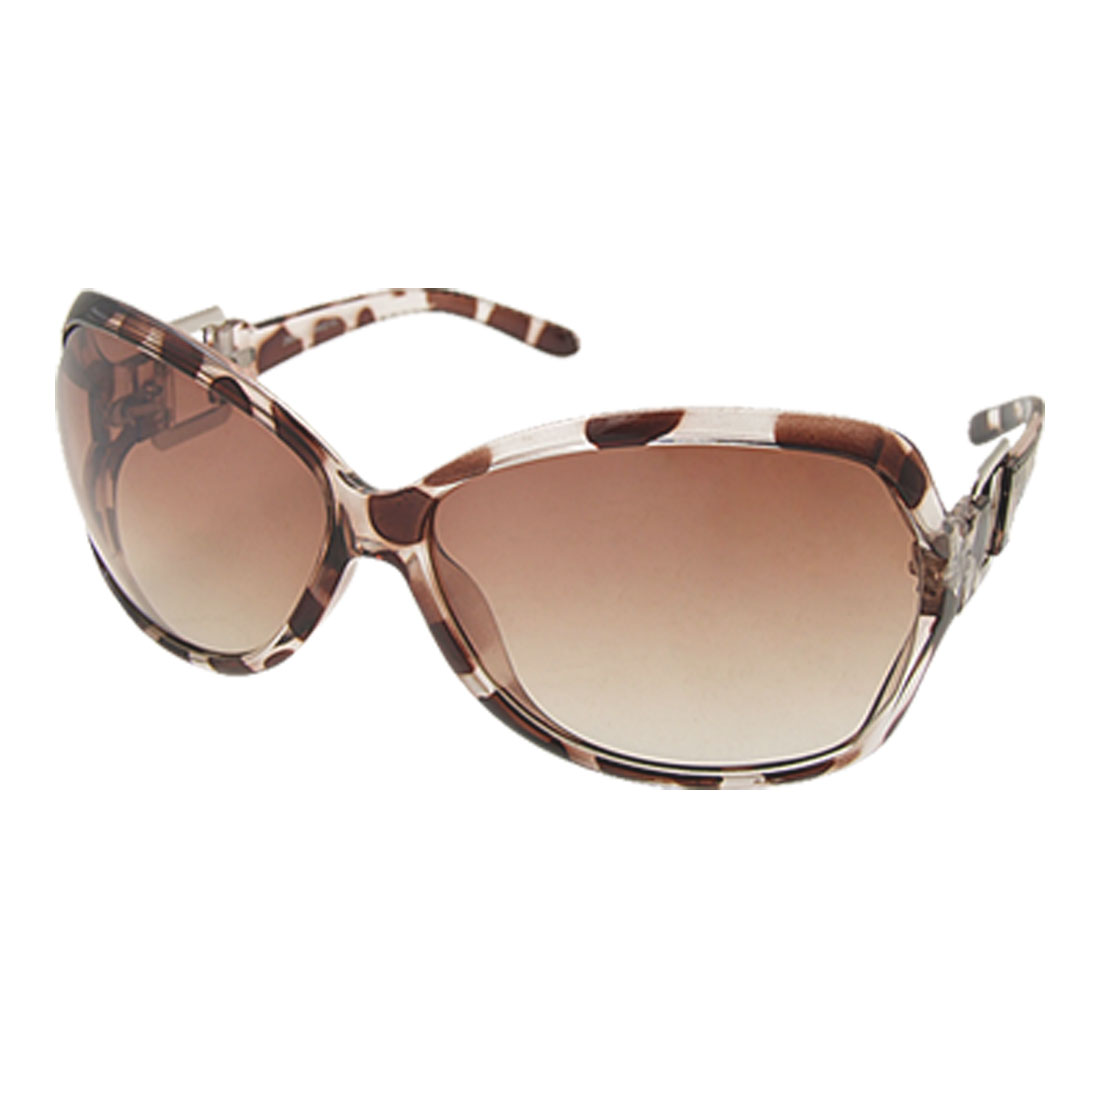 Leopard Plastic Fashion Sunglasses Eyewear for Ladies